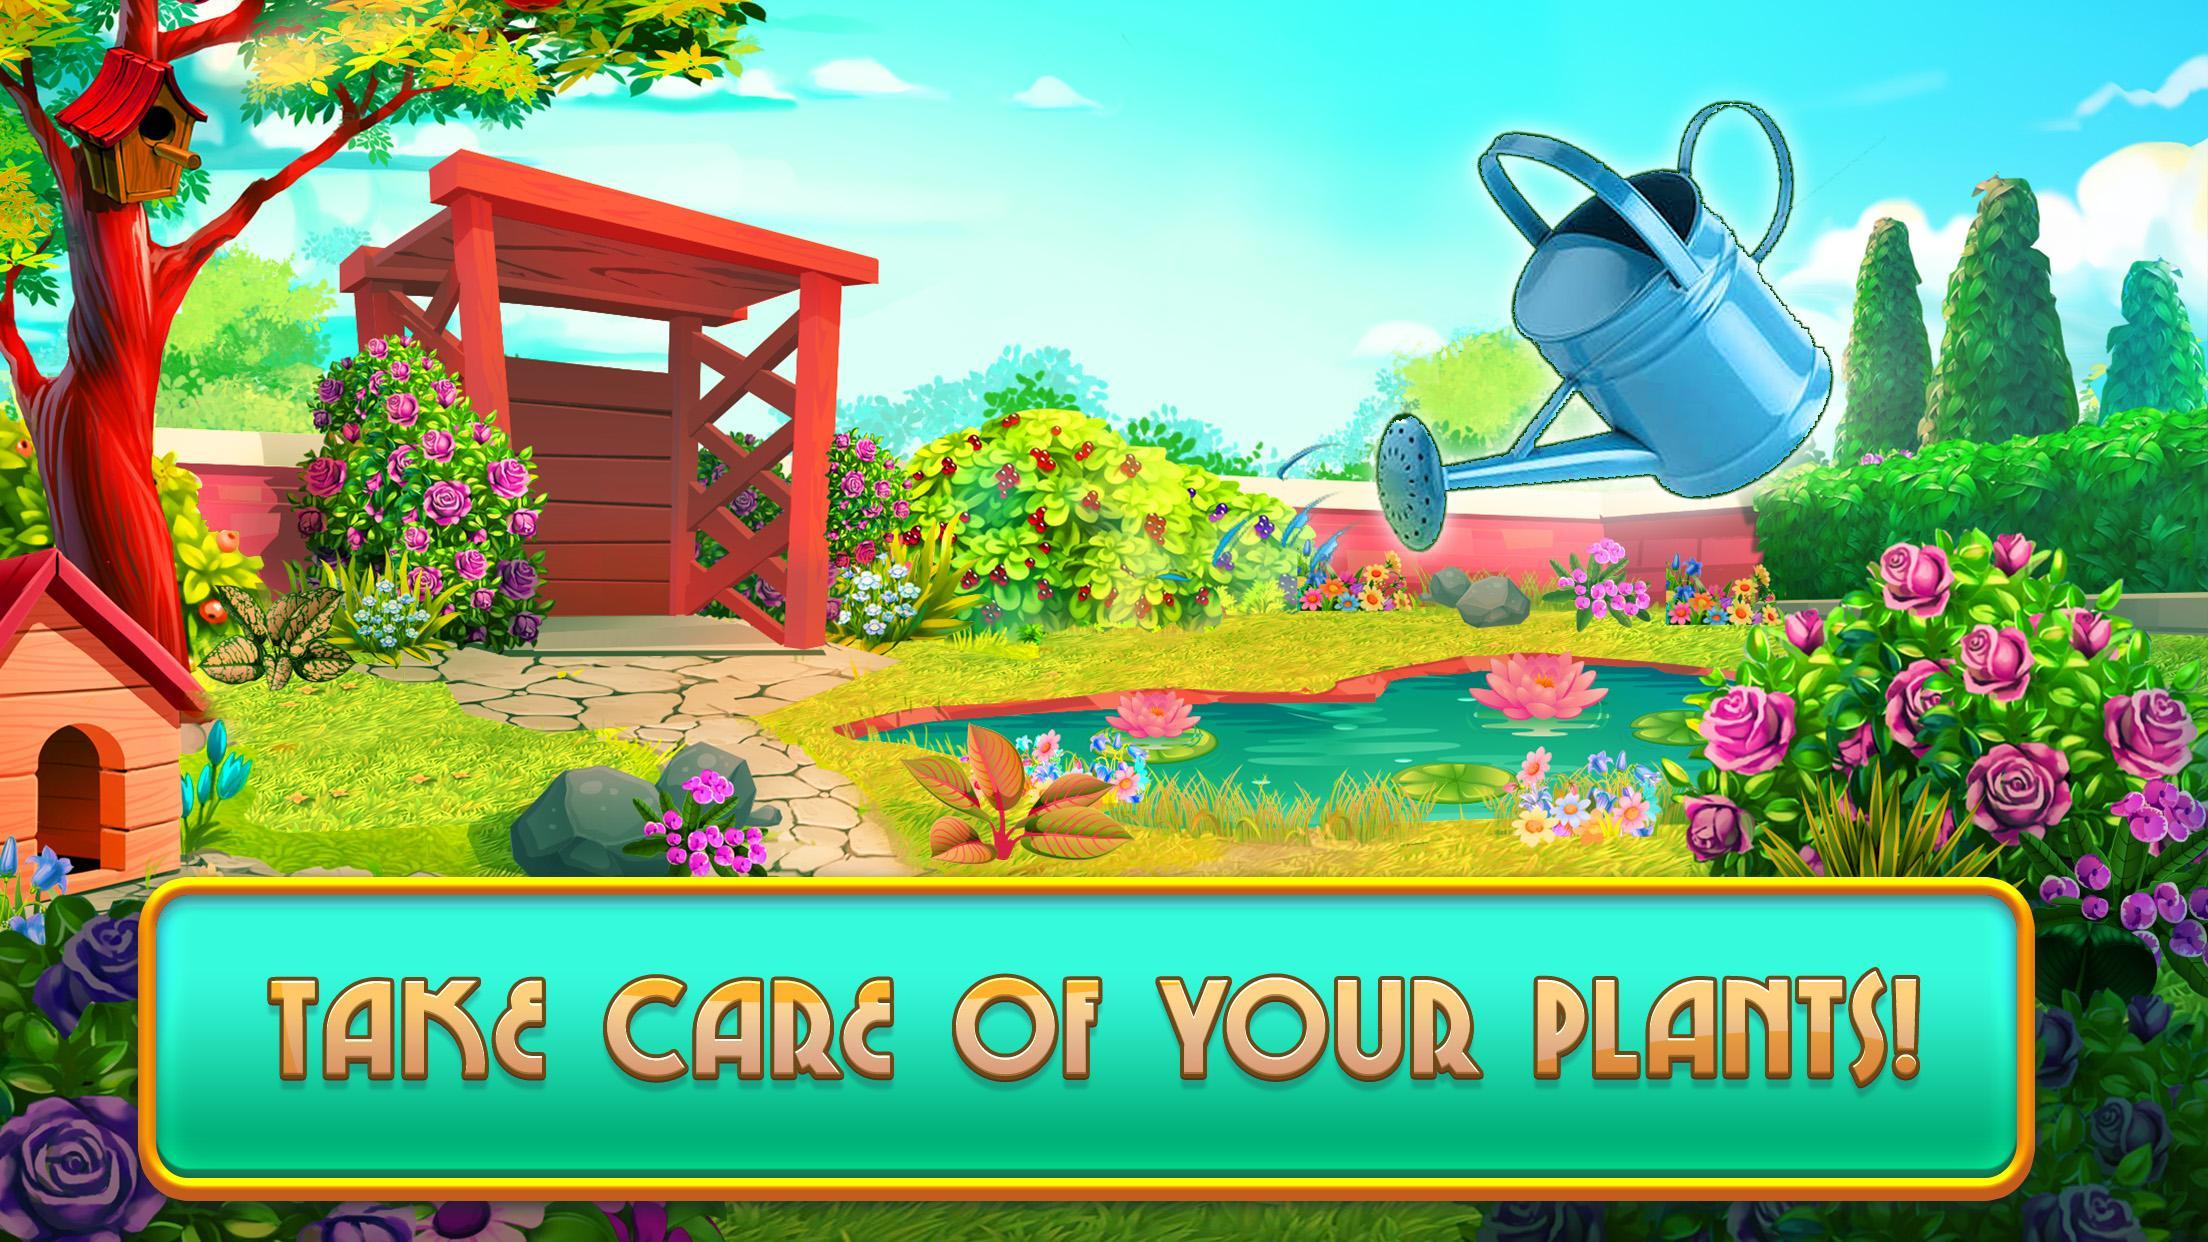 My Little Garden: Classic Solitaire & Design Game for ...